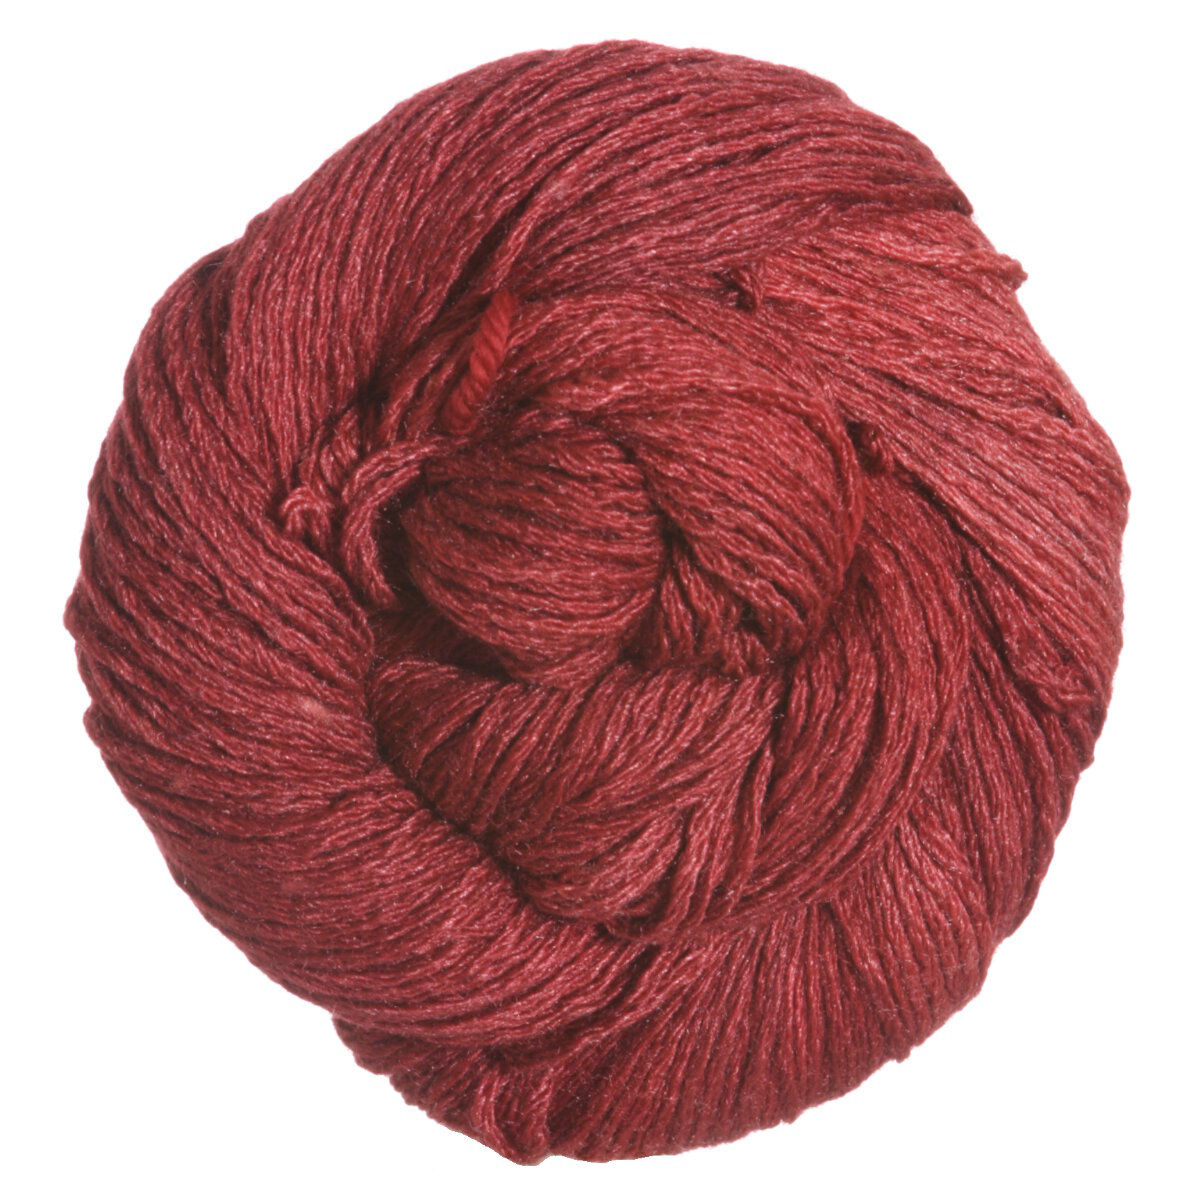 Knitting With Two Colors Carrying Yarn : Swans island natural colors sport yarn currant at jimmy